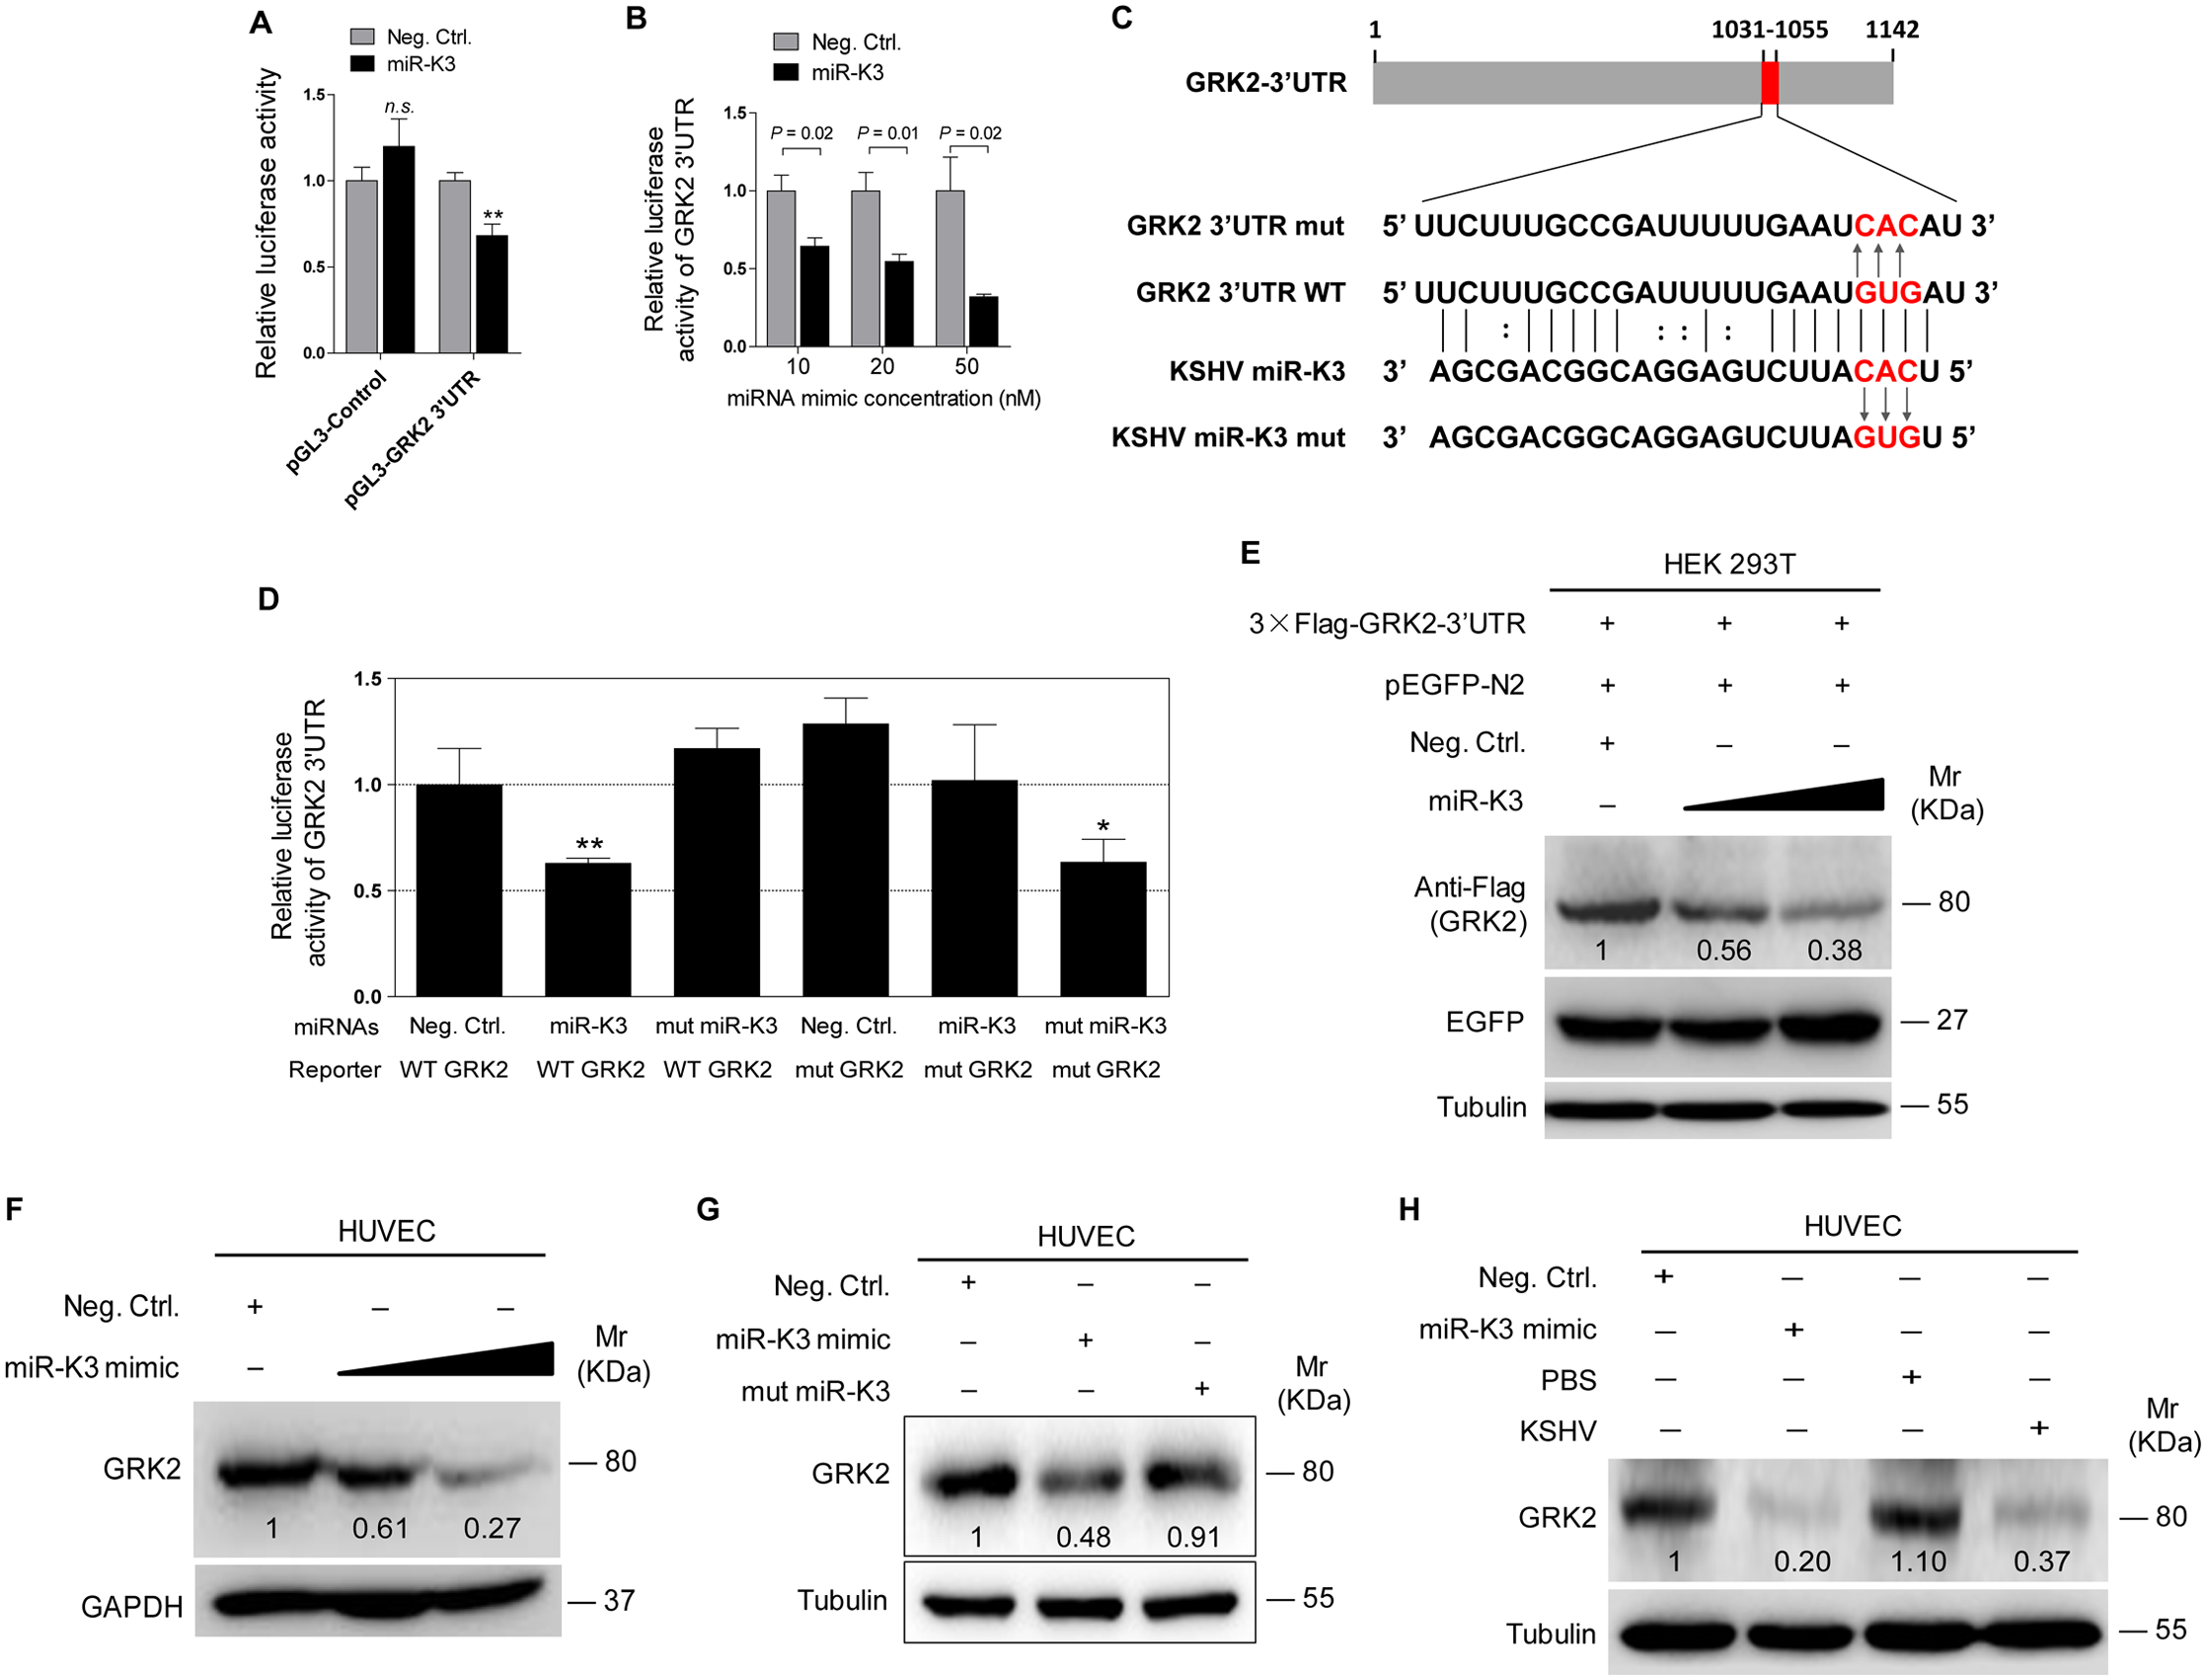 GRK2 is directly targeted by miR-K3.